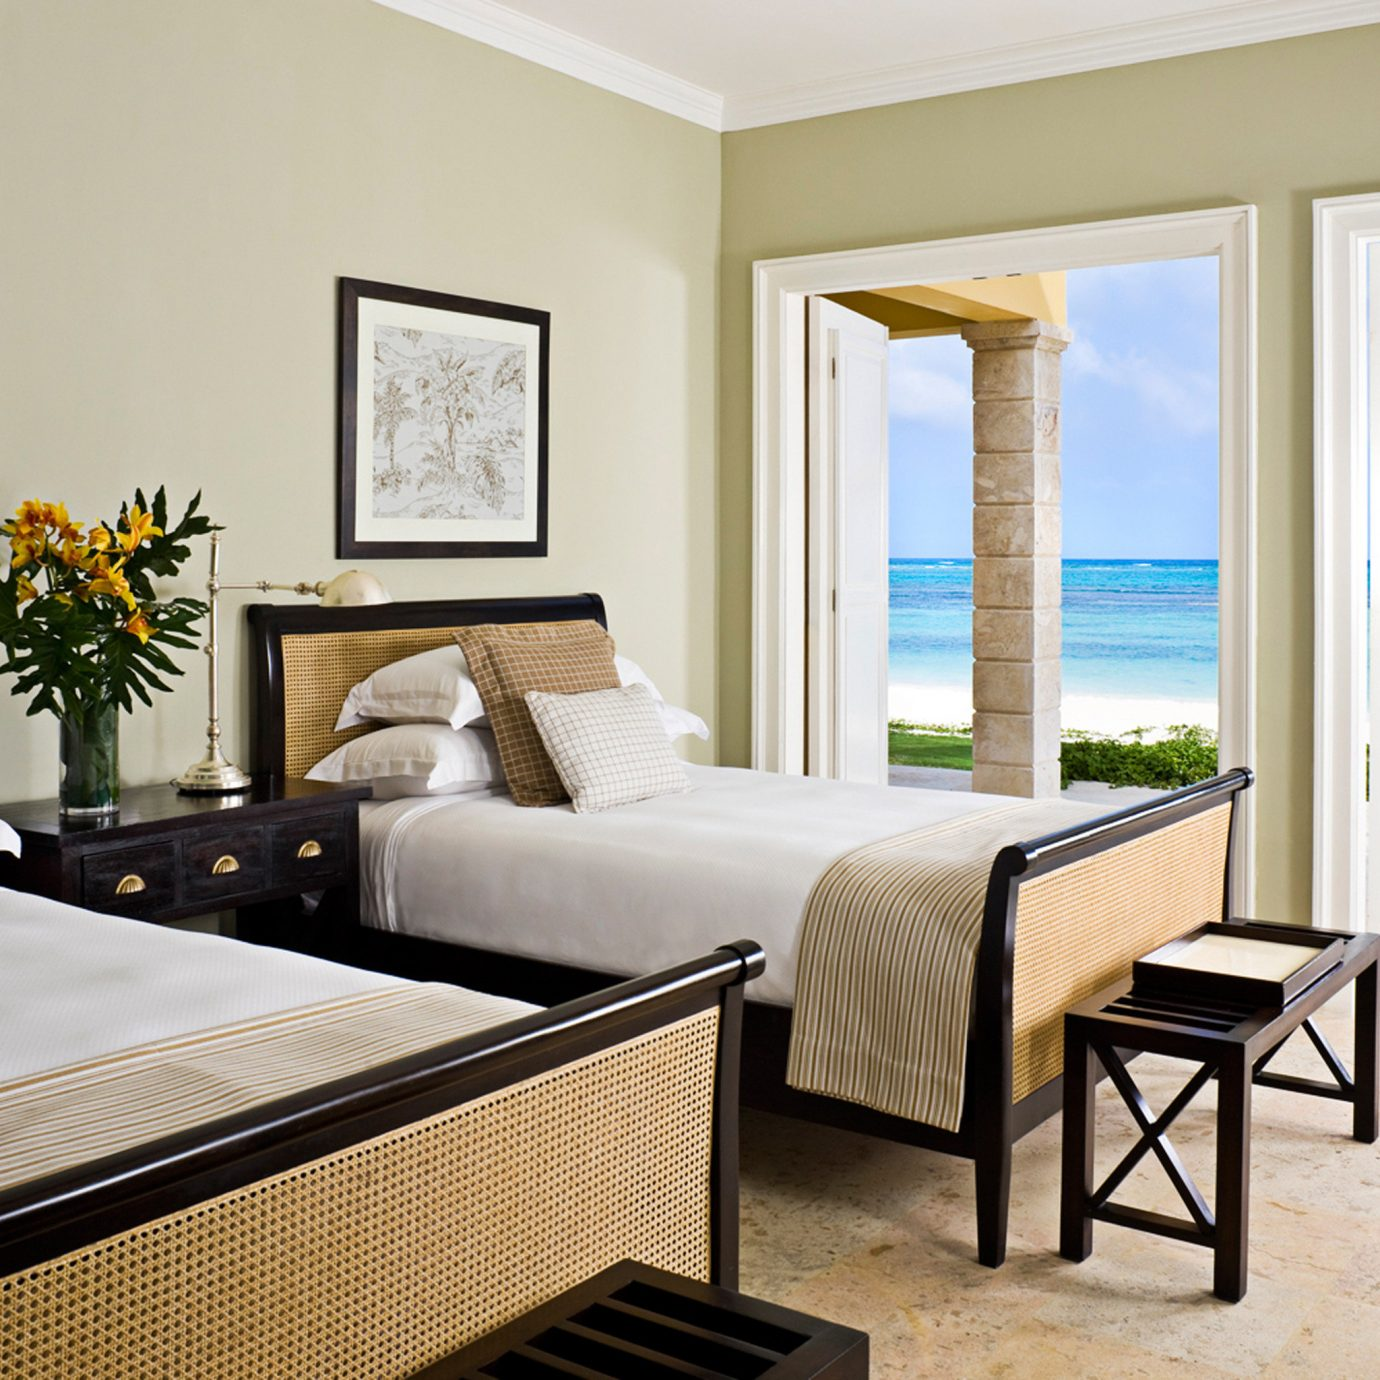 Beachfront Bedroom Luxury Modern Resort Suite property home living room Villa condominium cottage